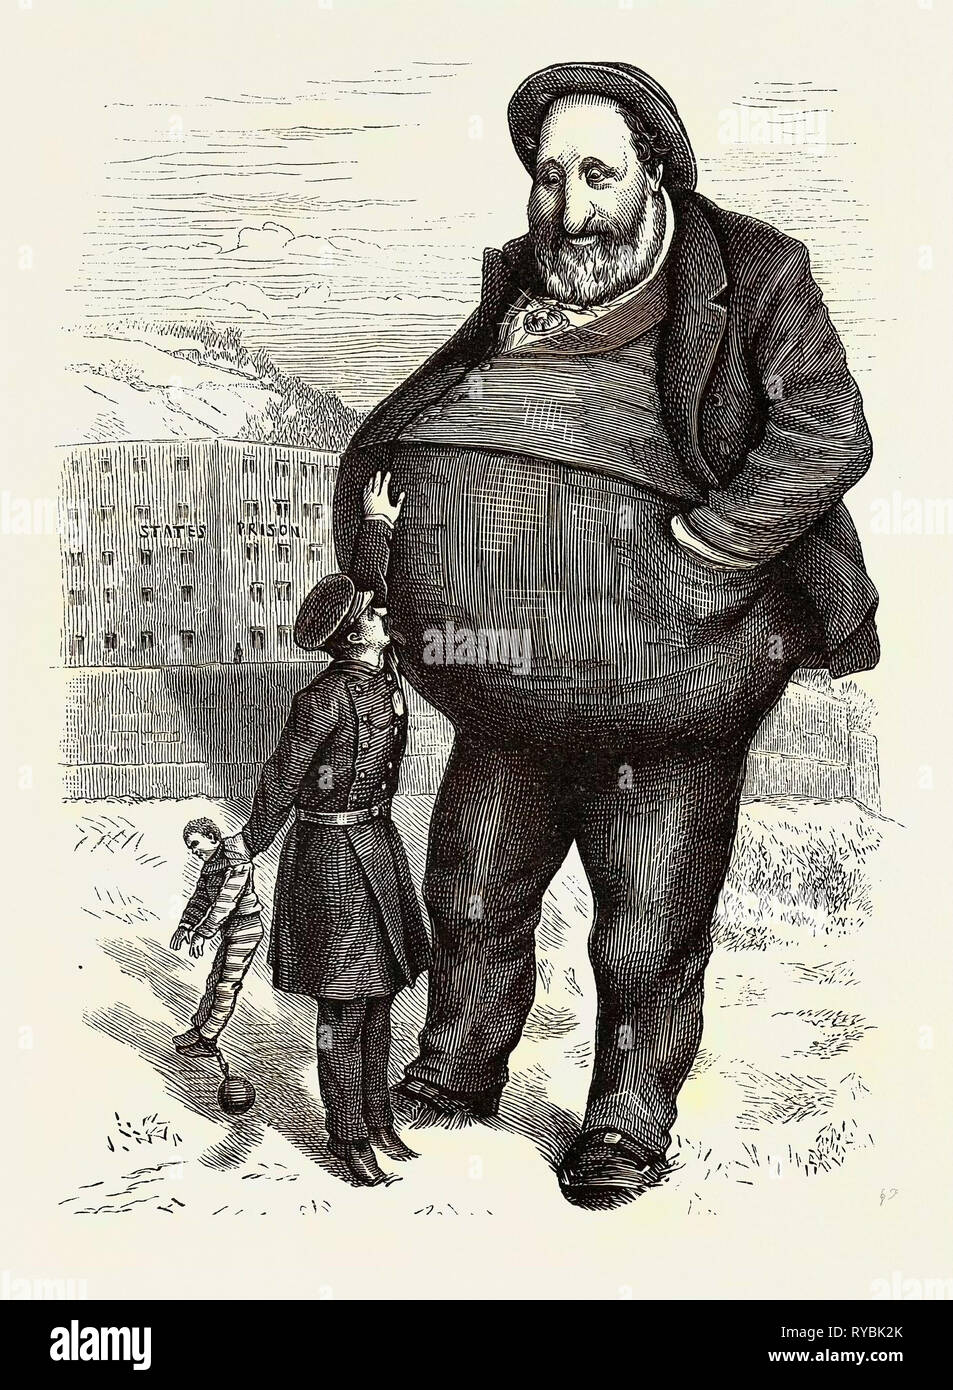 The New York Tammany Frauds: Can the Law Reach Him? the Dwarf and the Giant Thief Stock Photo